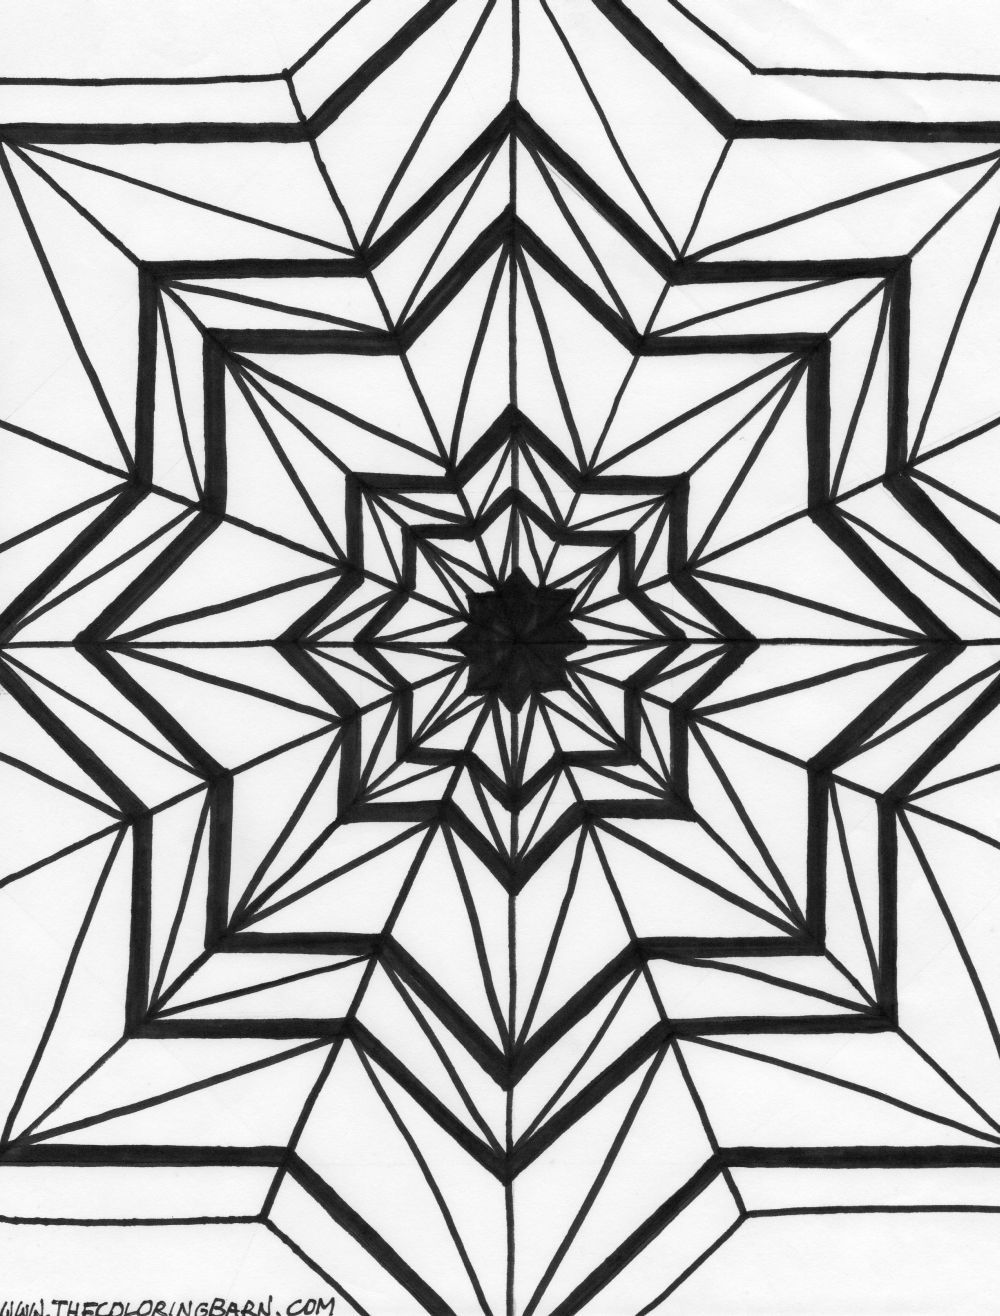 Kaleidoscope 17 coloring page 4k desktop backgrounds adult coloring pages doodles mandalas